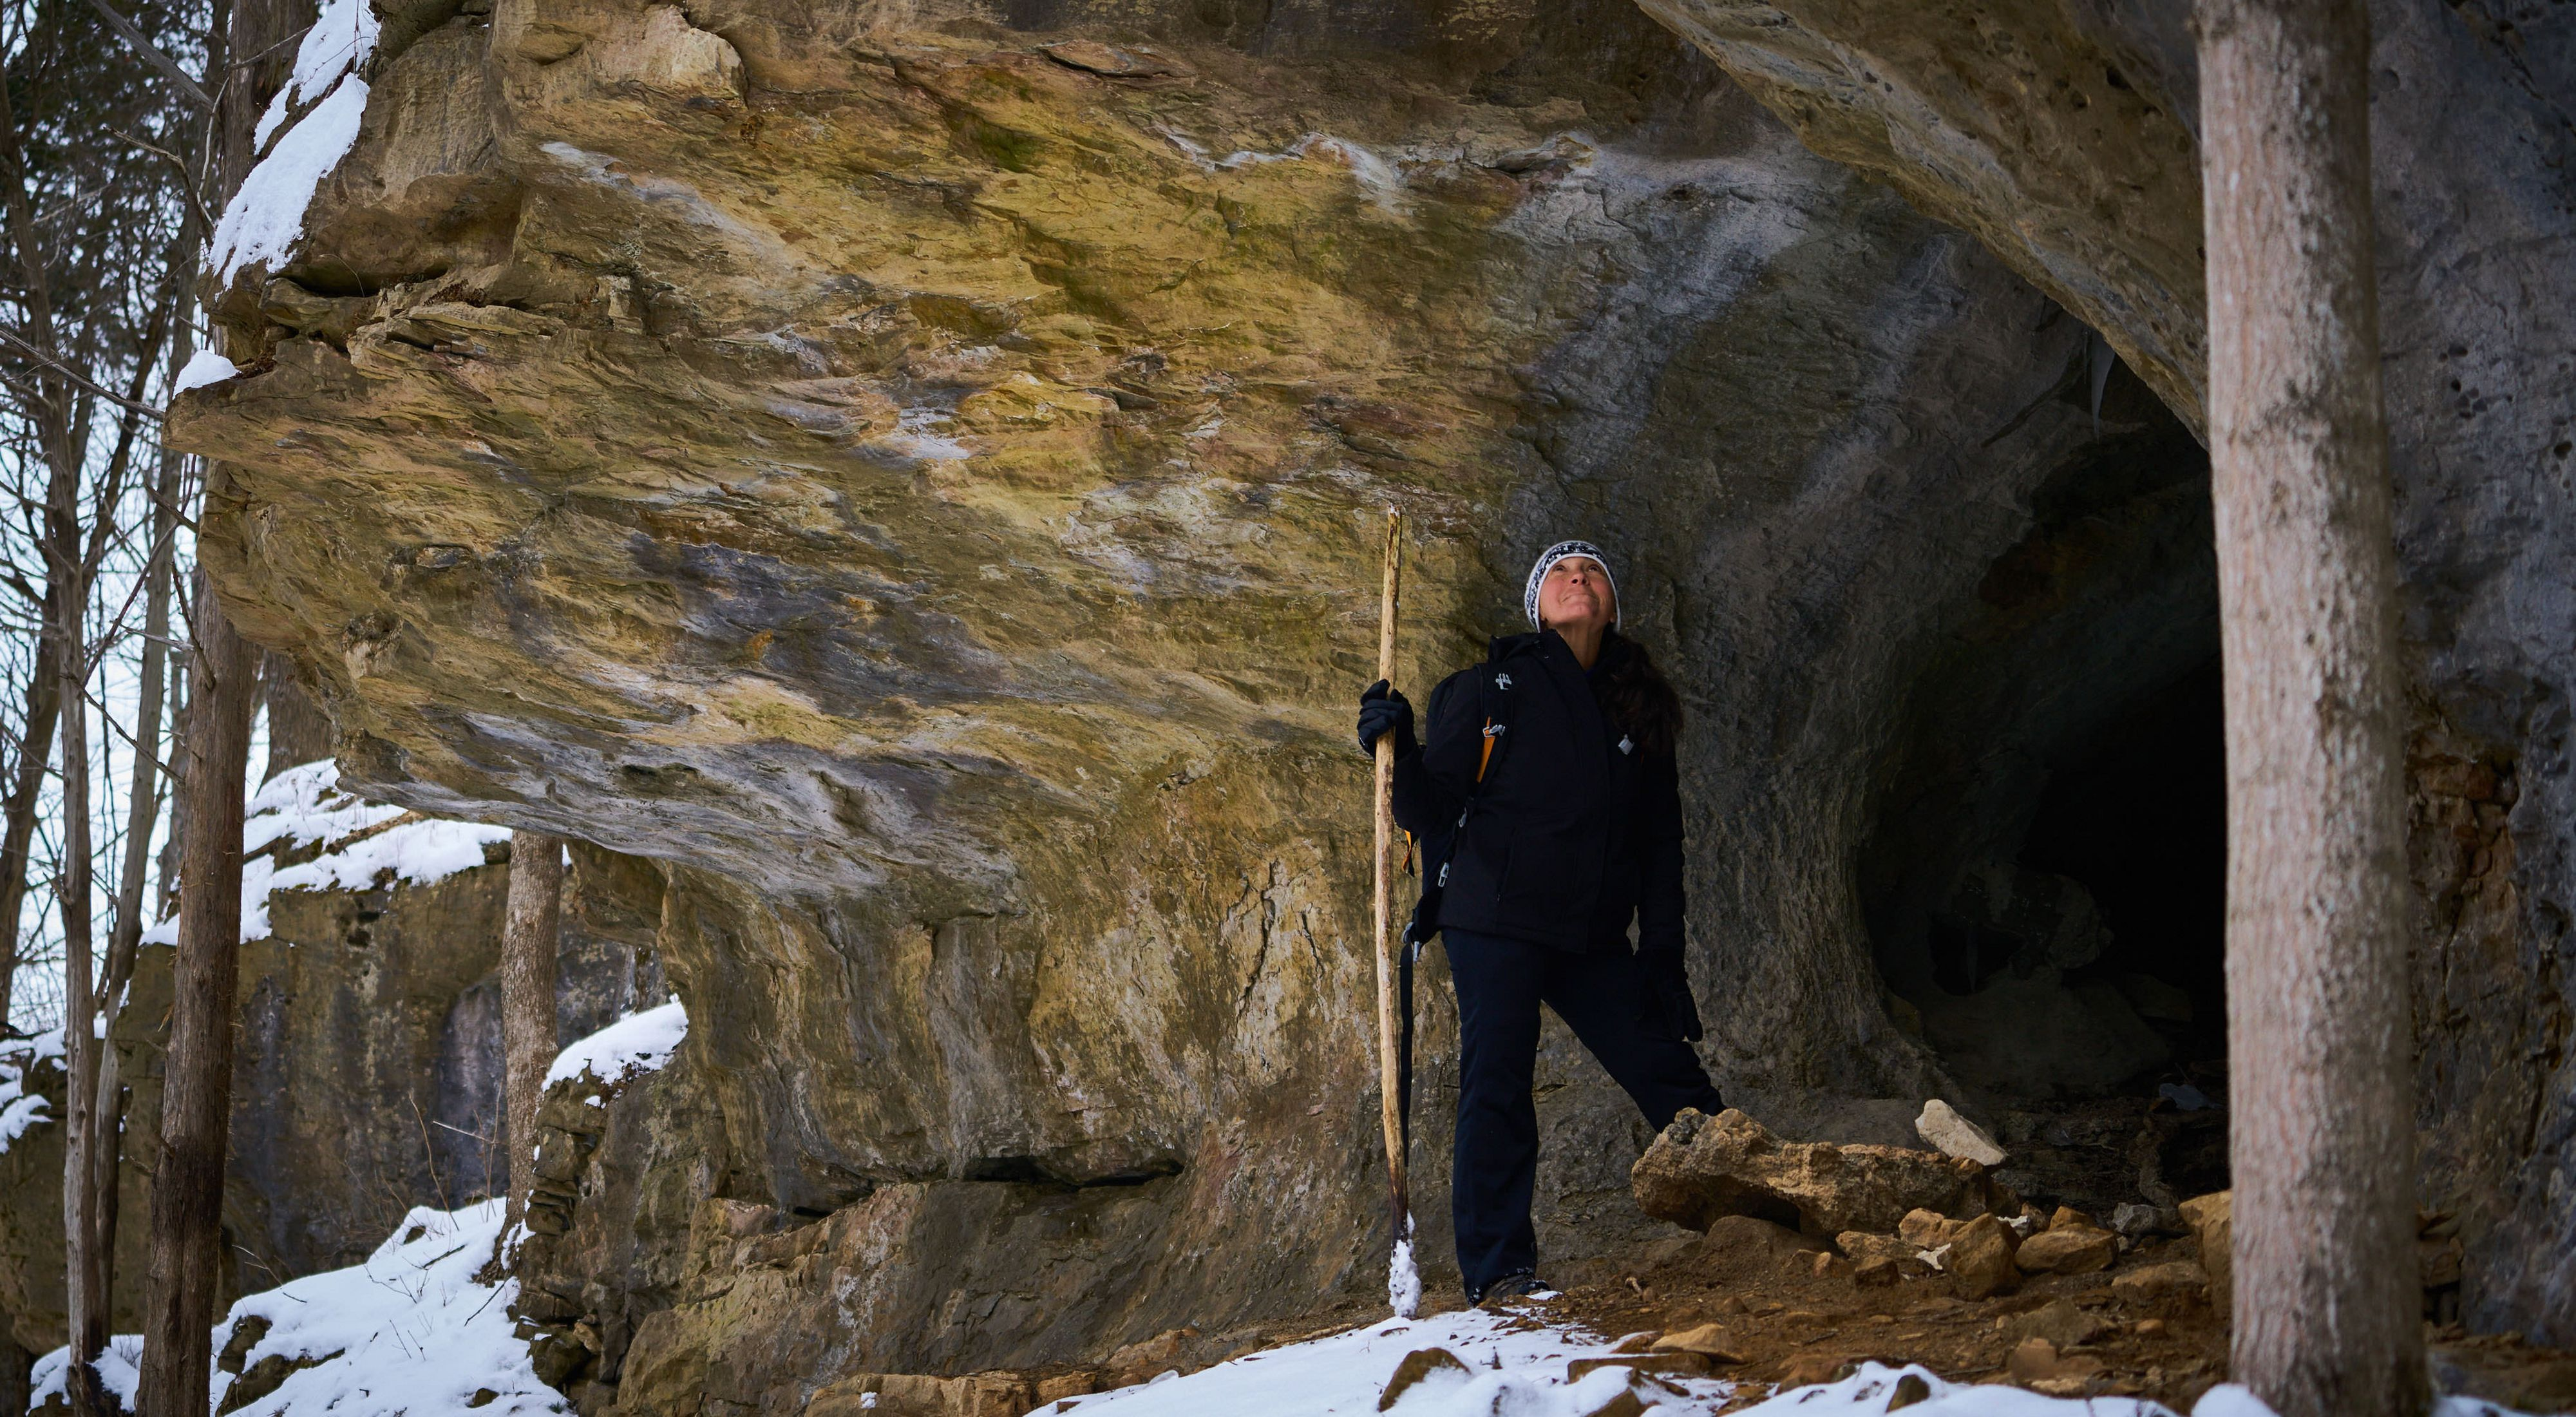 A woman dressed in black with a white winter hat, holds a walking sticks as she stands under a large rock overhang. Snow dots the rock and ground.